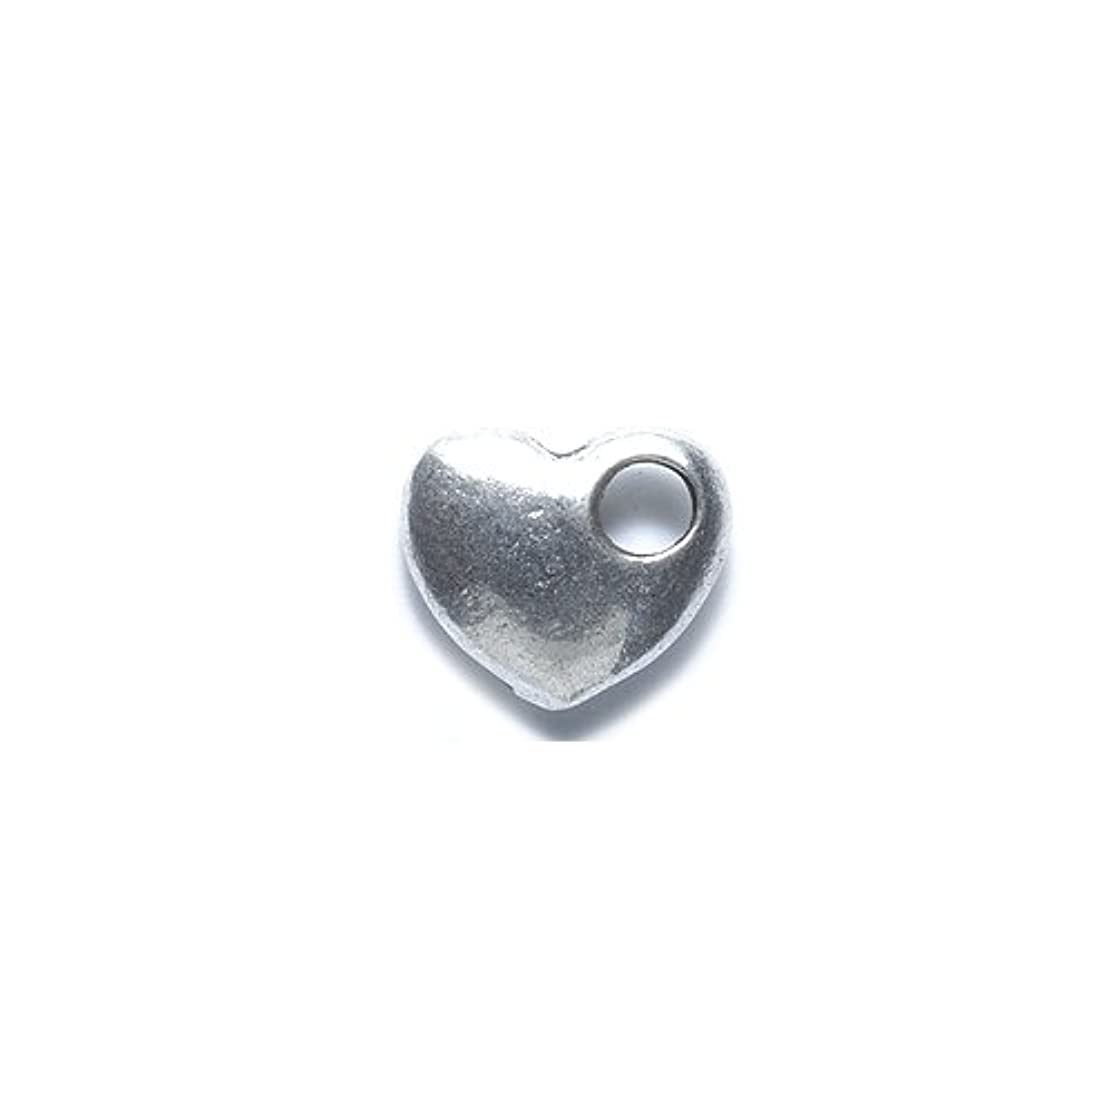 Shipwreck Beads Zinc Alloy Heart with Large Hole Charm, 11 by 13mm, Silver, 30-Pack